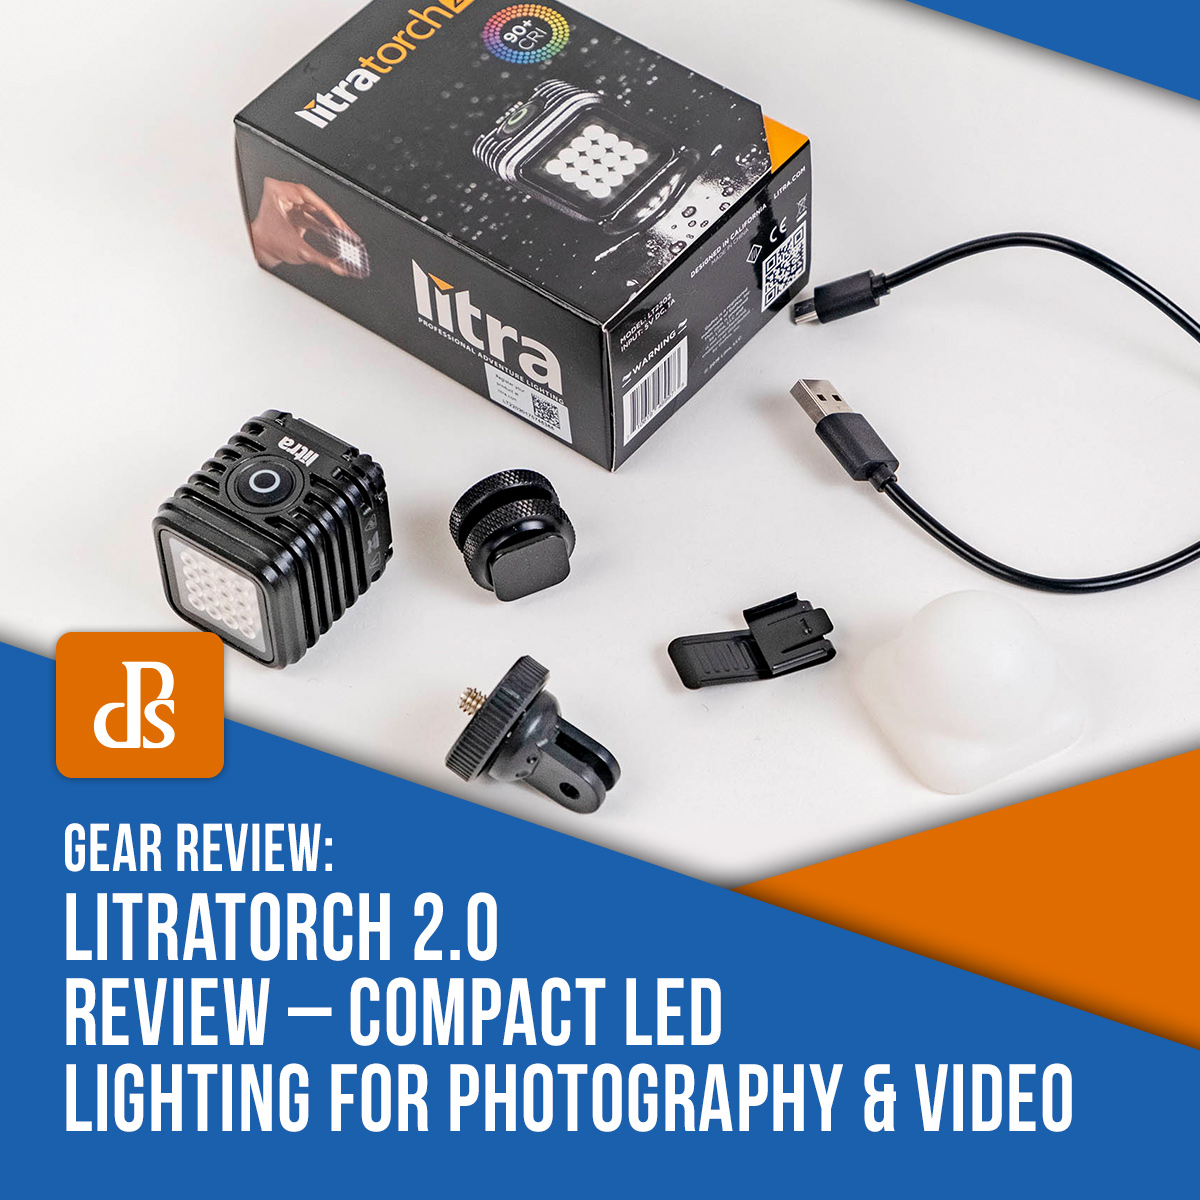 LitraTorch 2.0 Review – LED lighting for photography and video